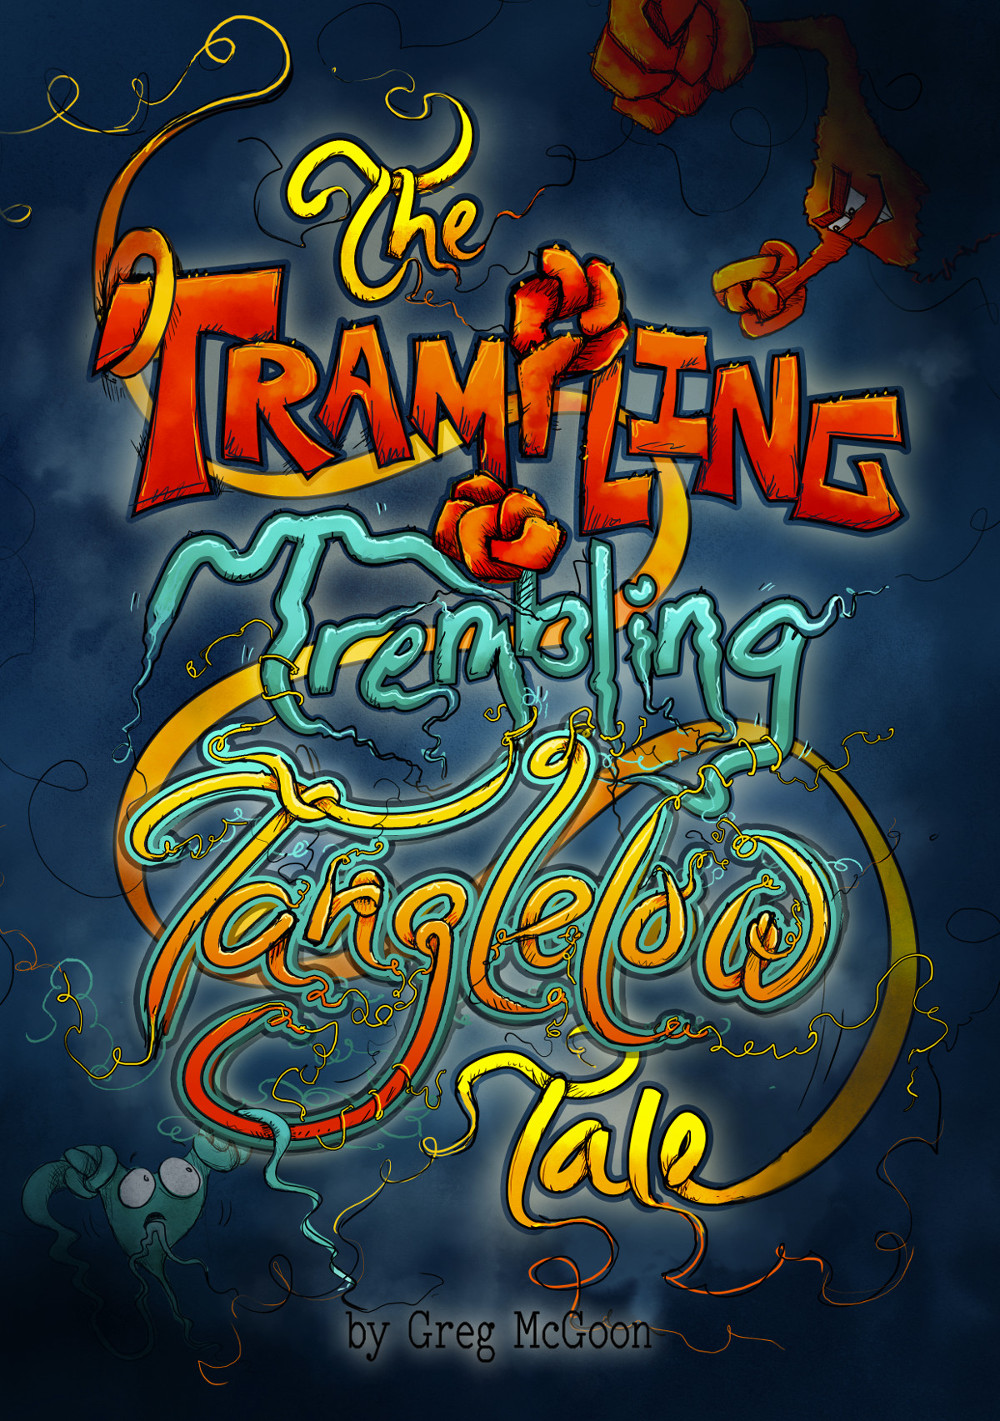 The Trampling Trembling Tanglelow Tale